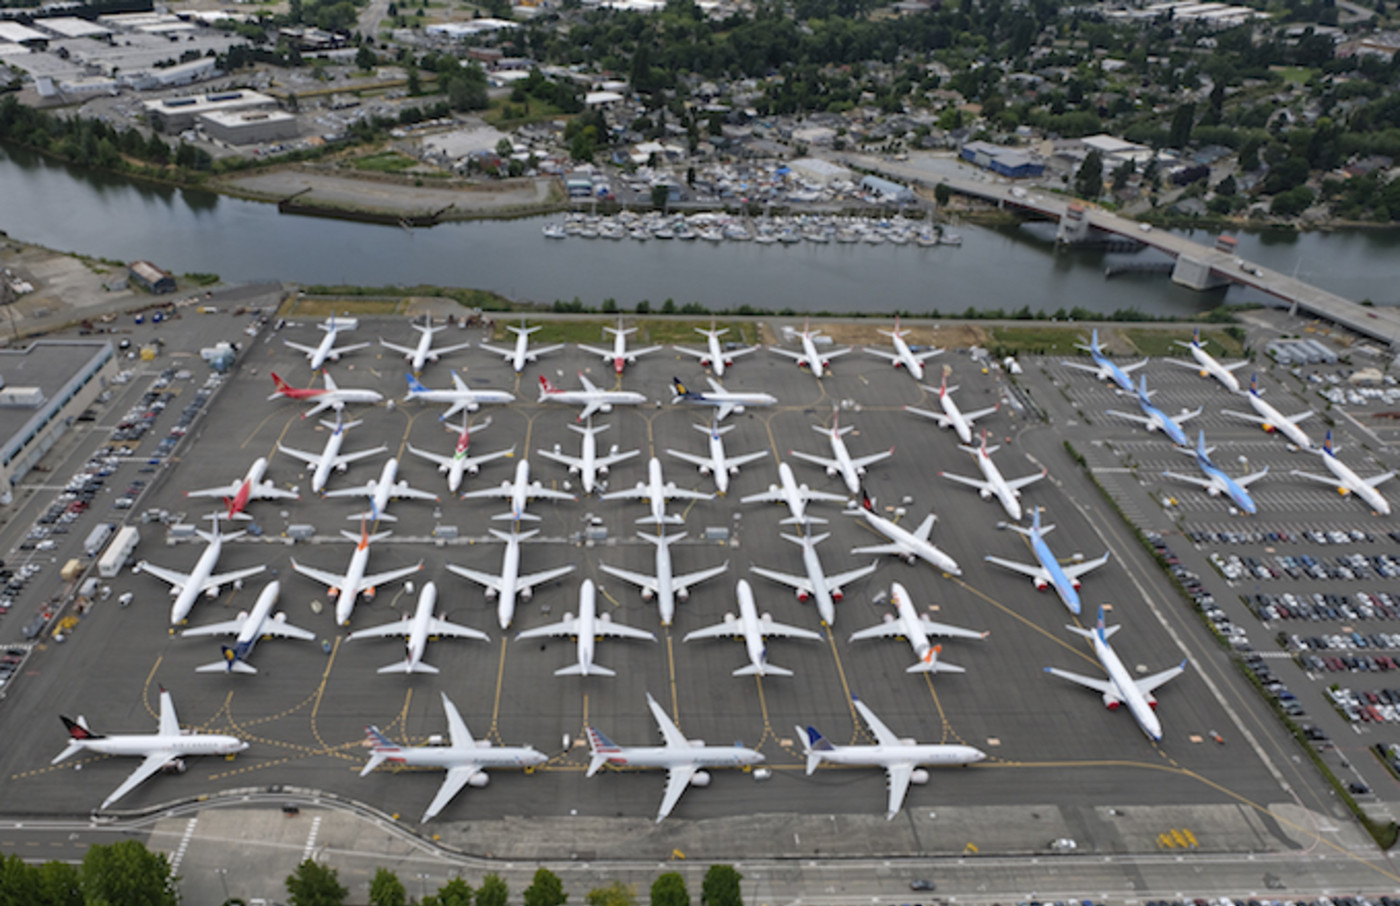 Boeing 737 MAX airplanes are stored on employee parking lots near Boeing Field.